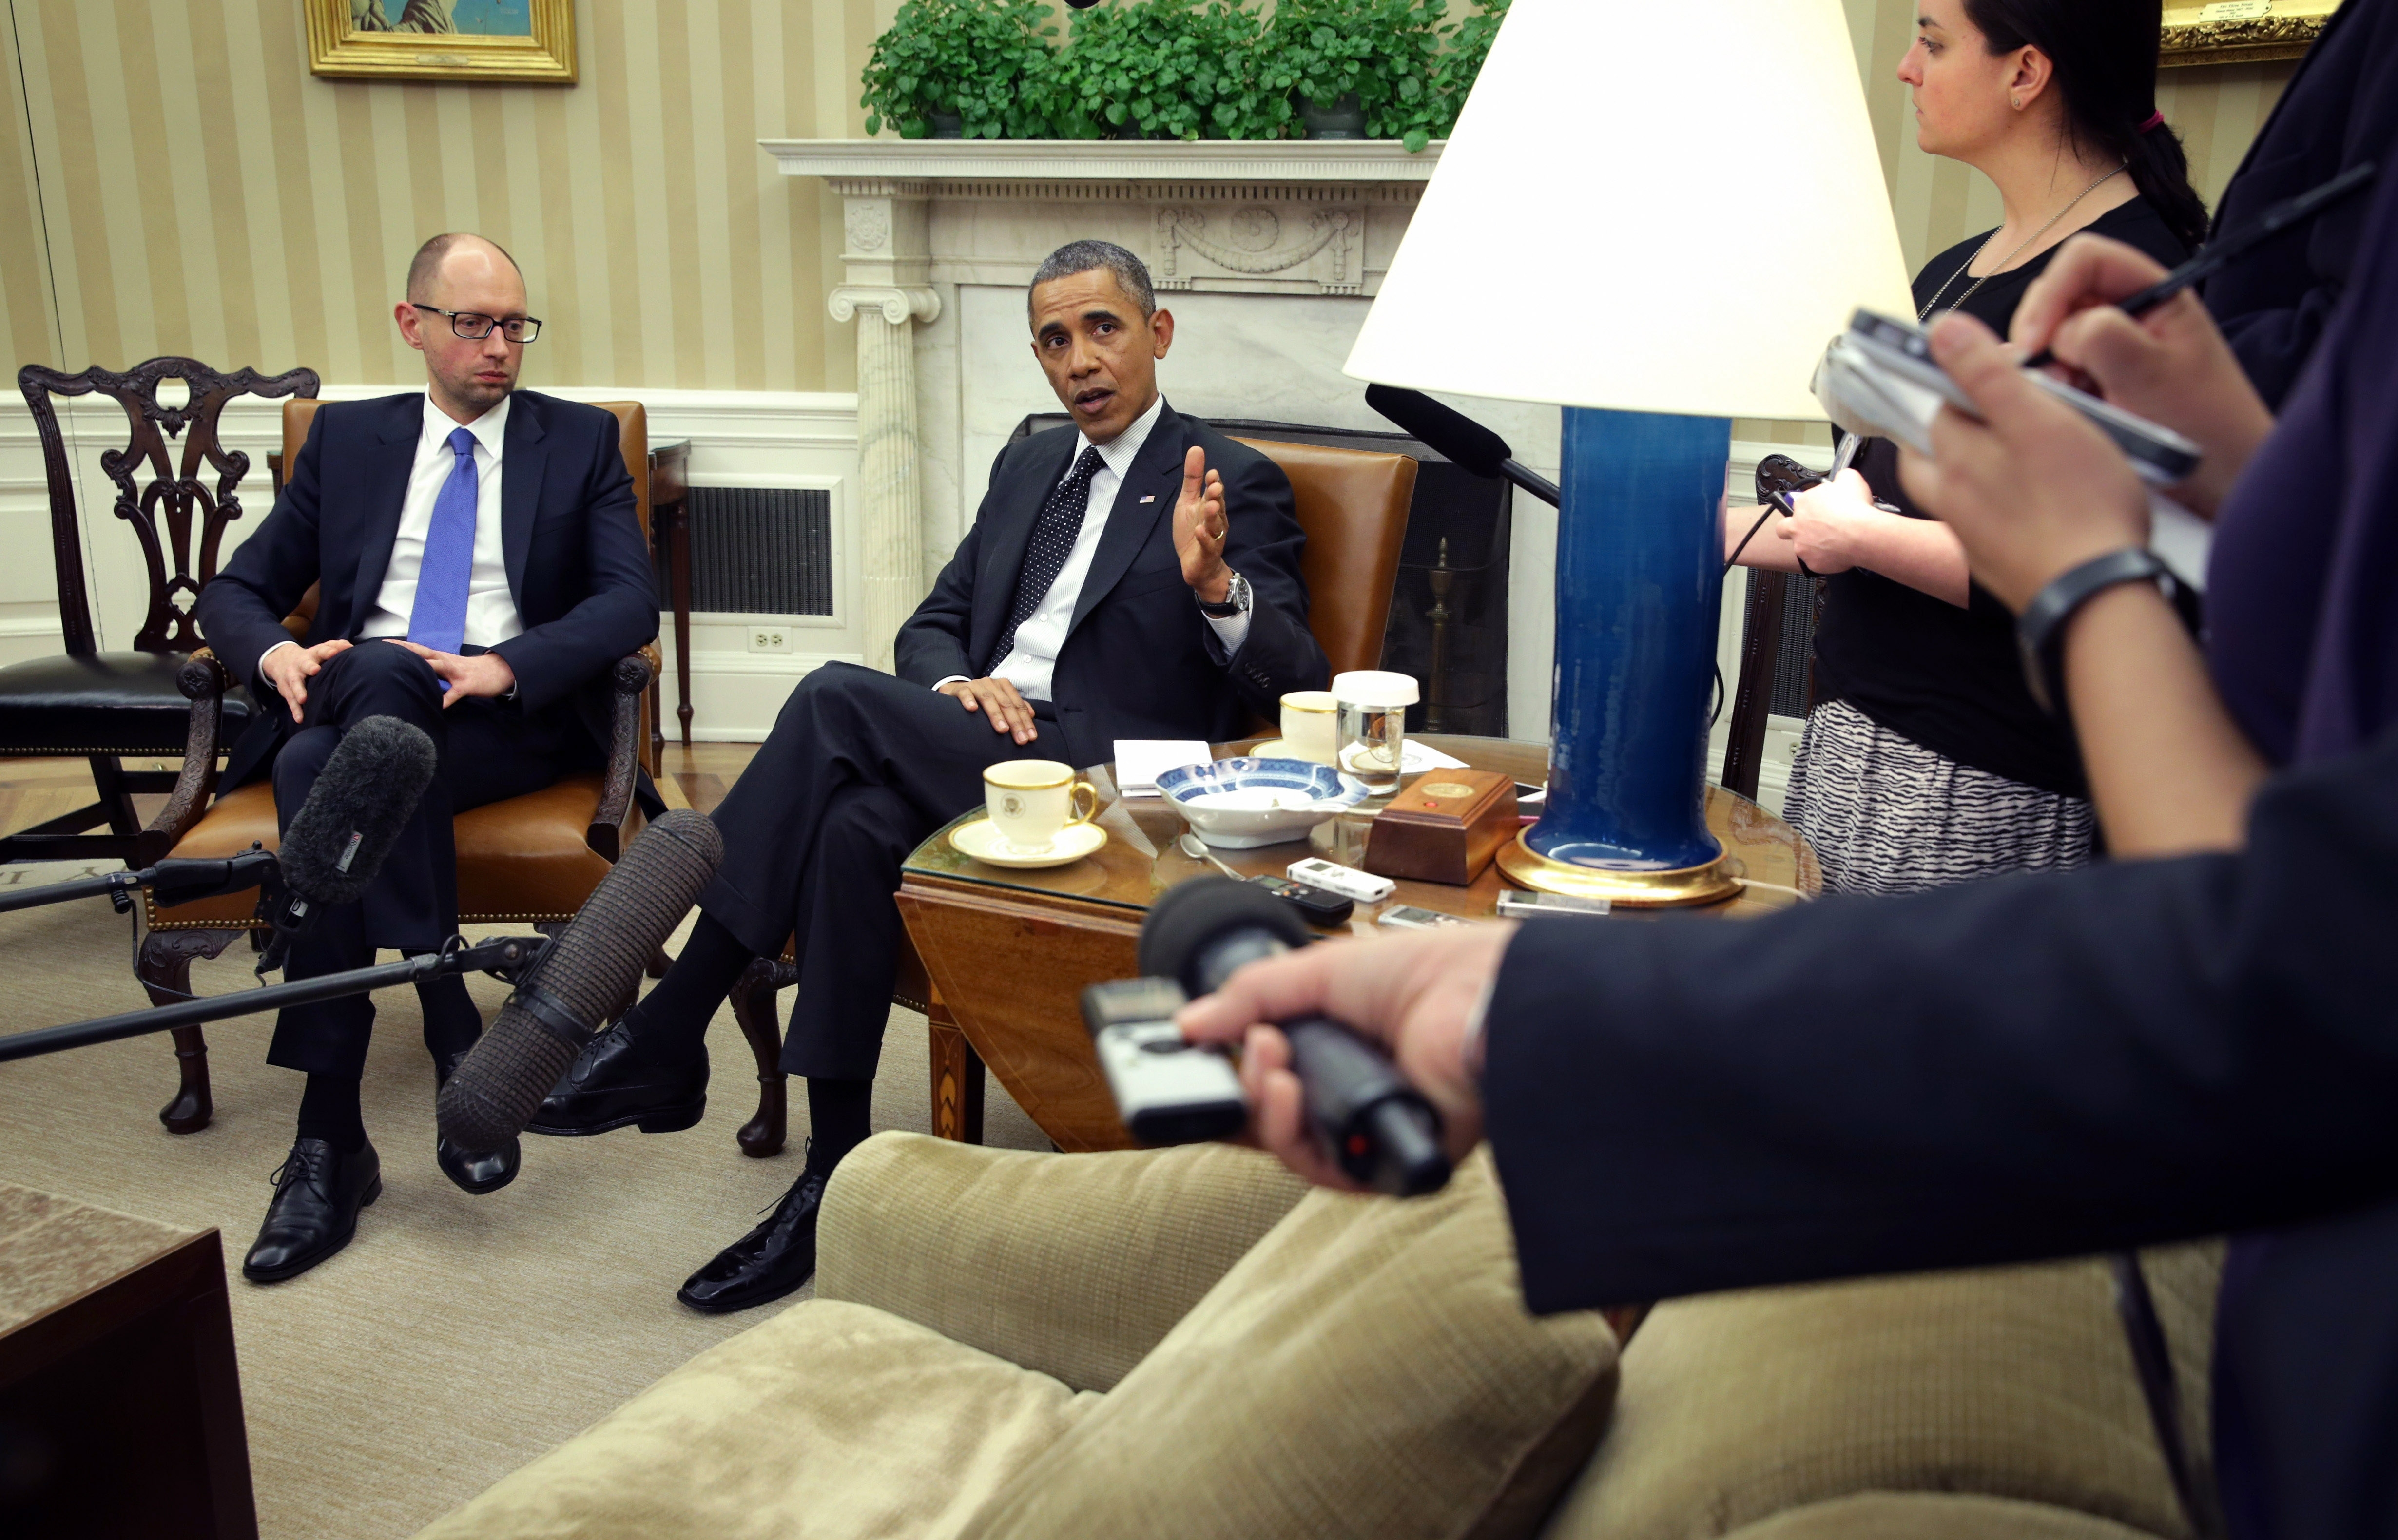 President Obama speaks during Oval Office meeting with Ukraine Prime Minister Arseniy Yatsenyuk, warning again of consequences for Russia if it does not withdraw from Crimea.